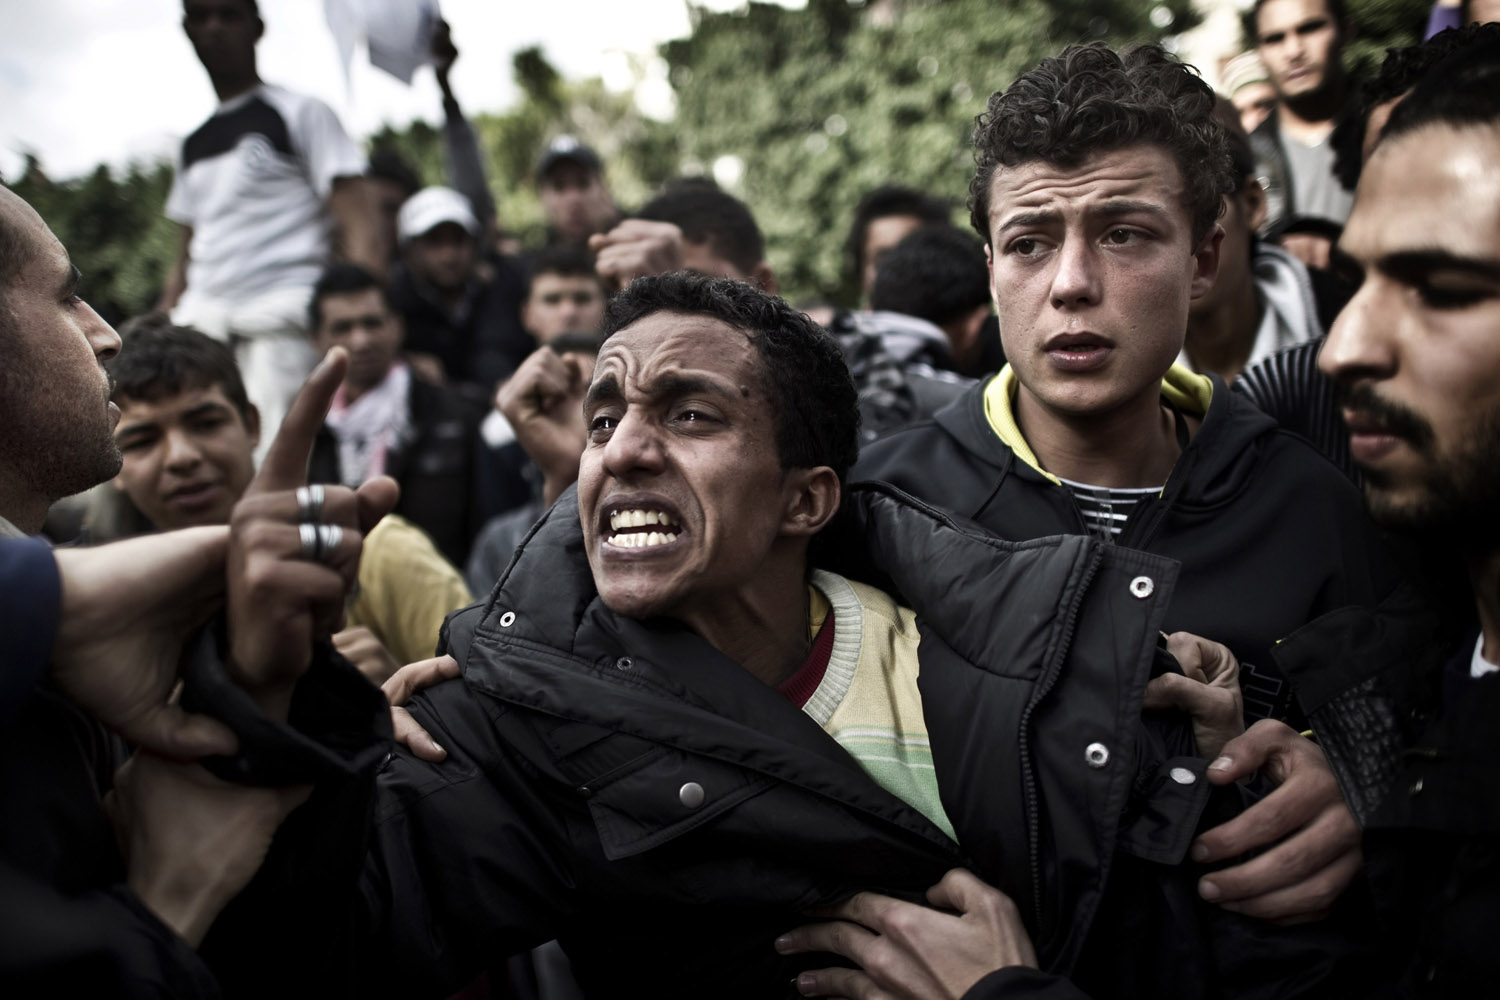 Jan. 14, 2011. A young Tunisian protestor cries in front of the interior ministry in Tunis because secret police tortured and killed his brother five years ago.